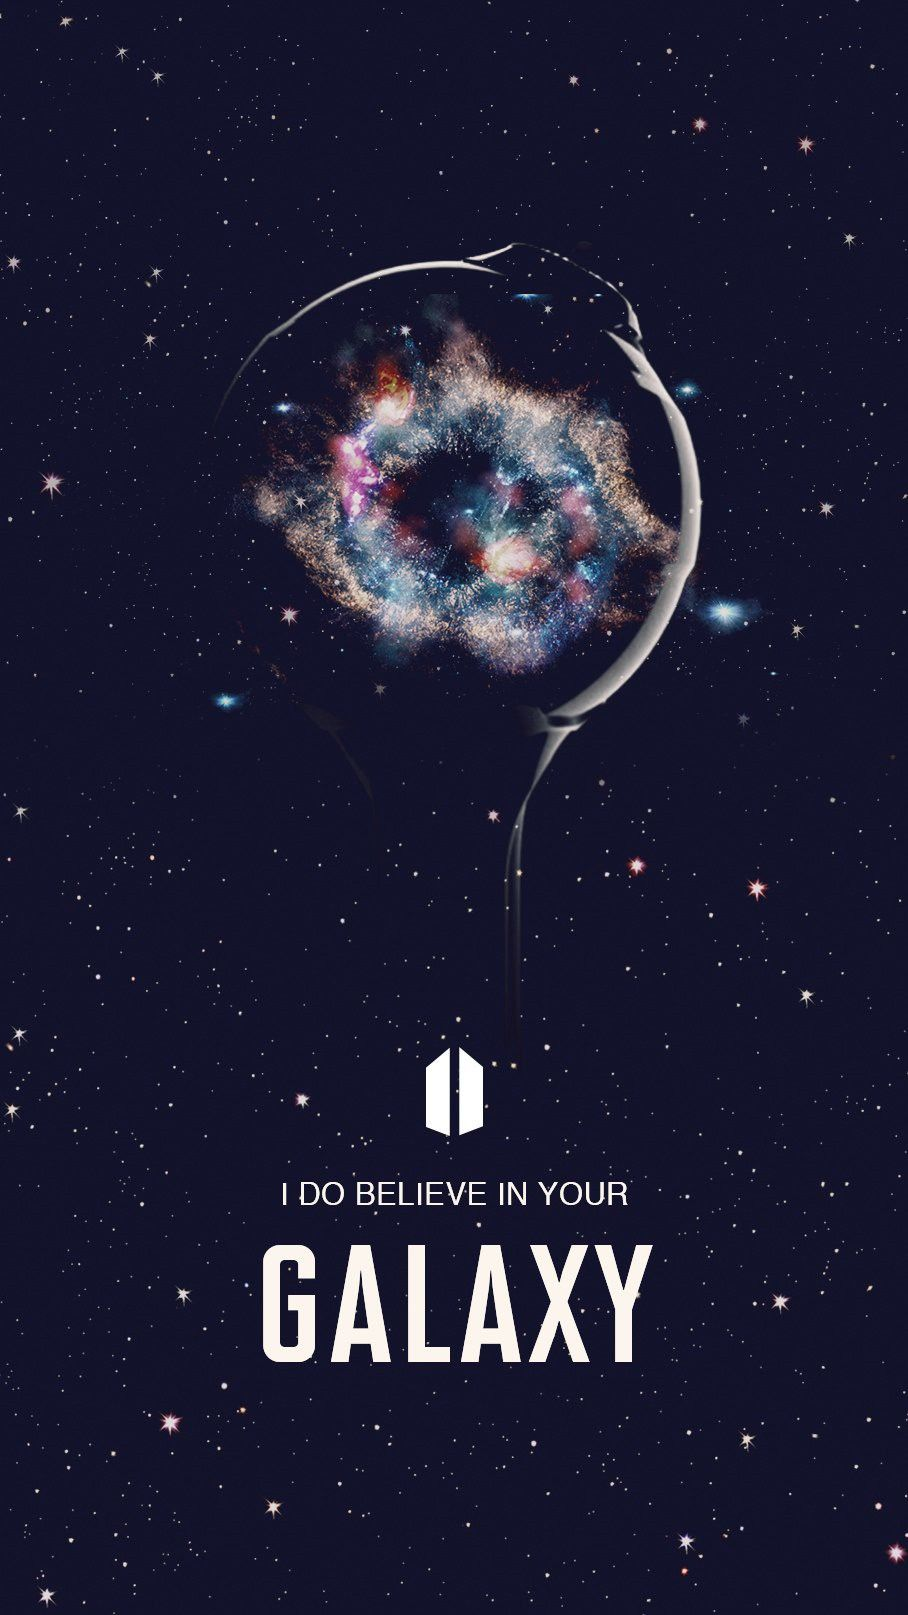 Bts Wallpaper Army Bomb Galaxy Bts Lockscreen Header